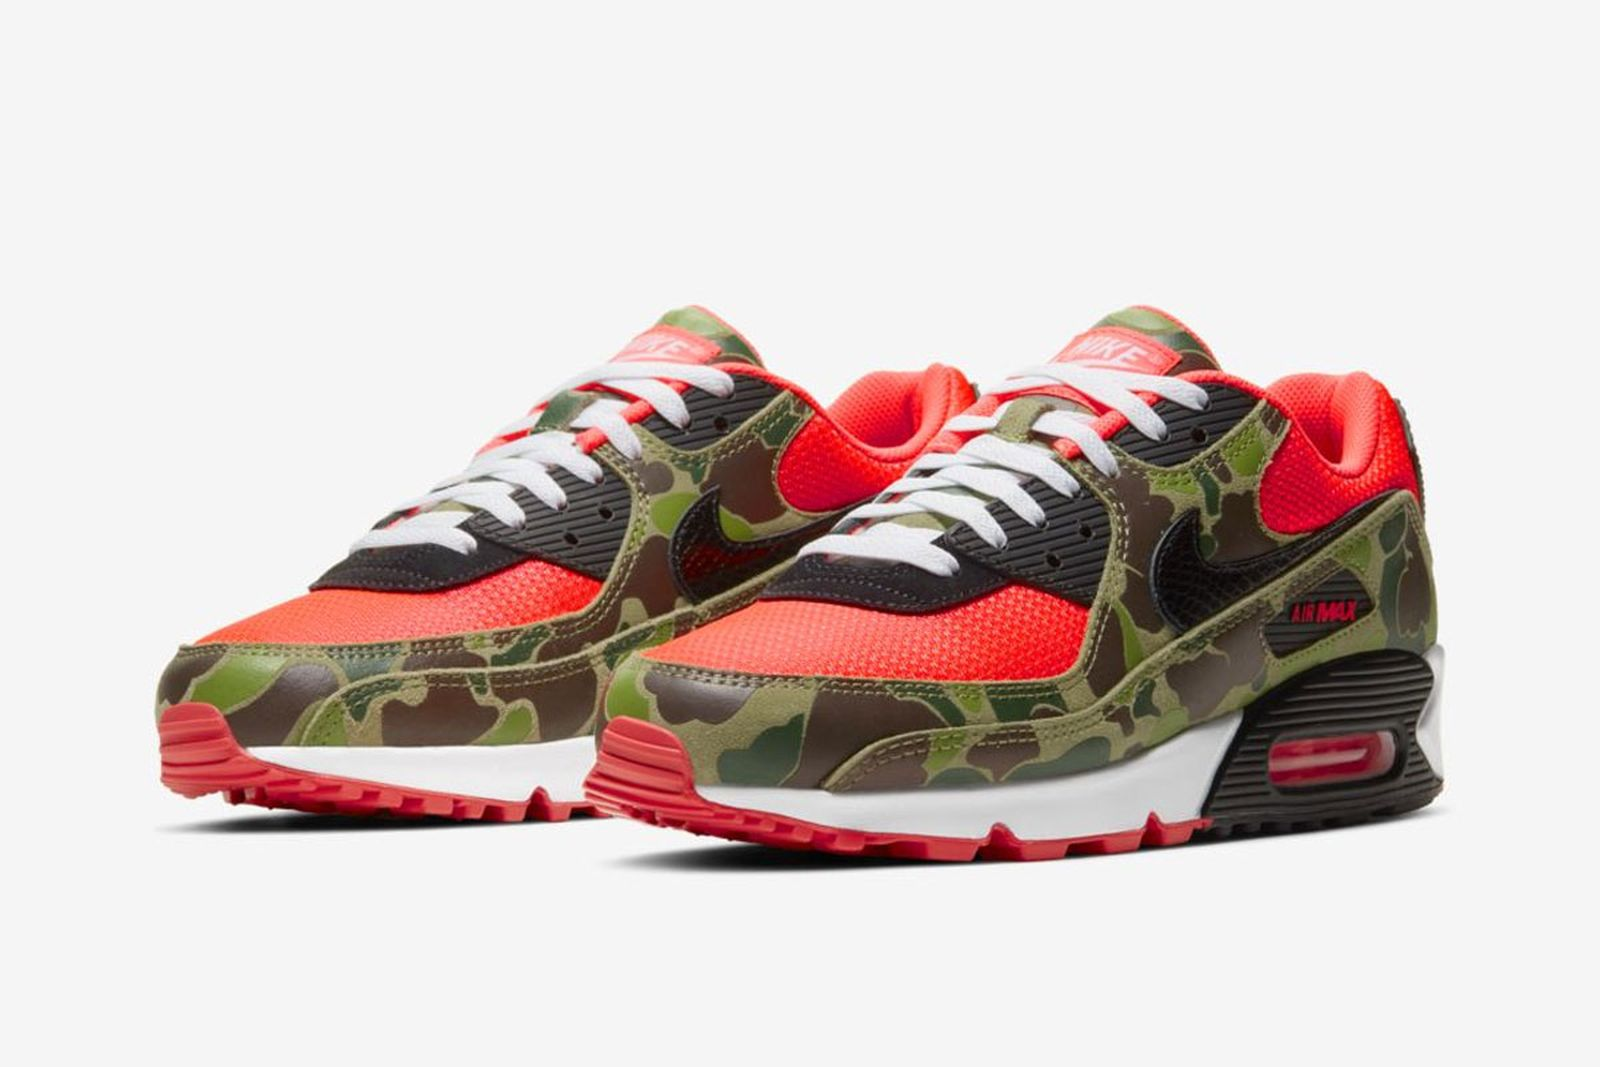 nike-air-max-90-reverse-duck-camo-release-date-price-02